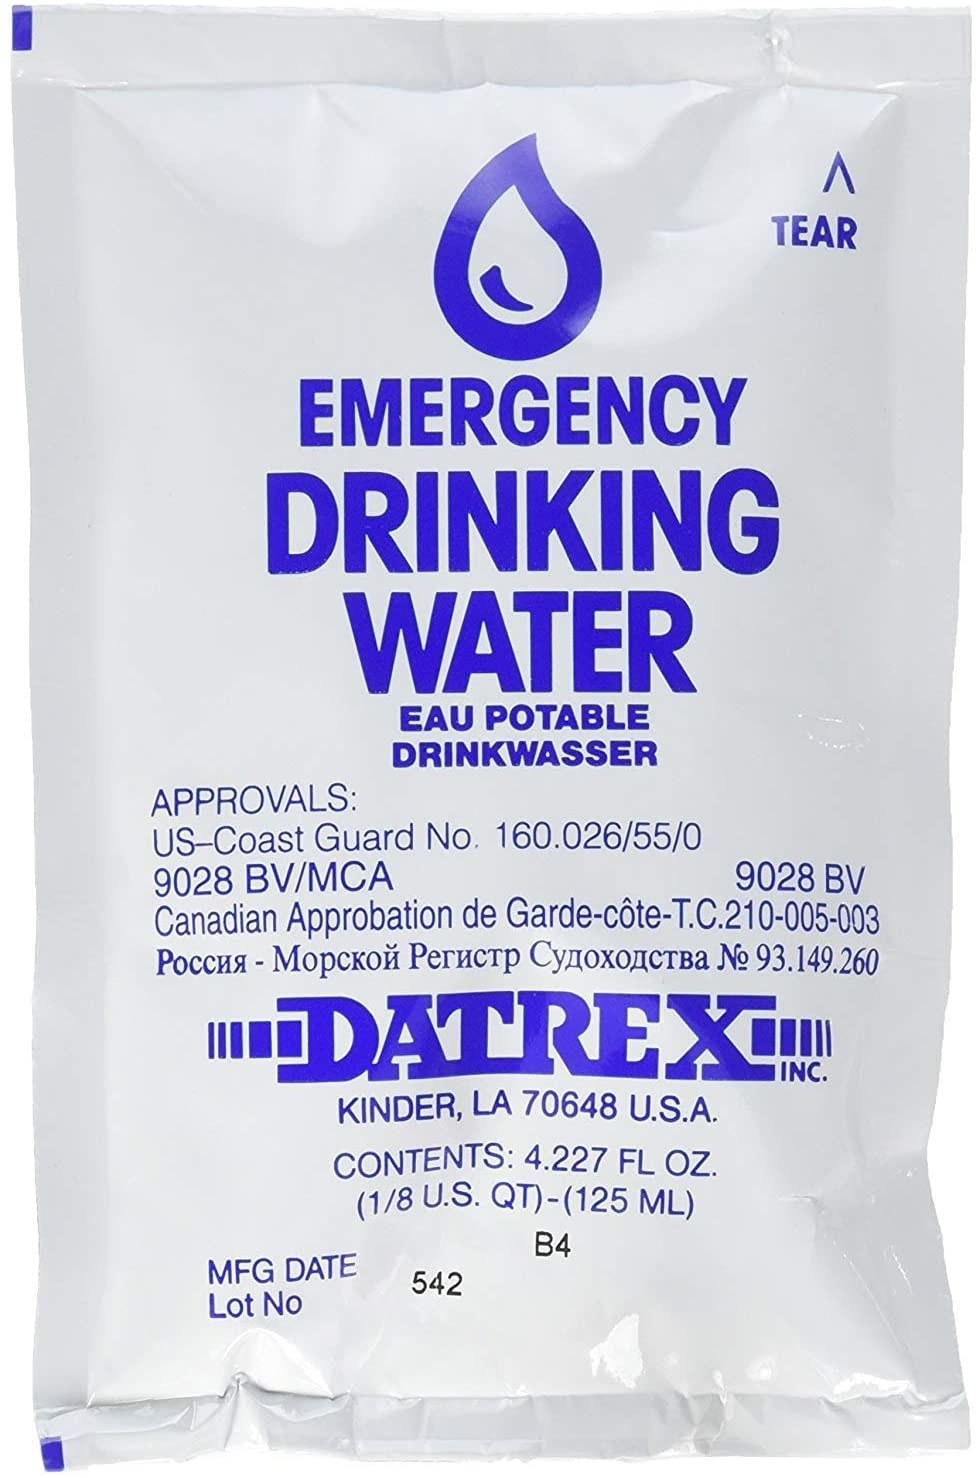 White packet of drinking water with blue lettering